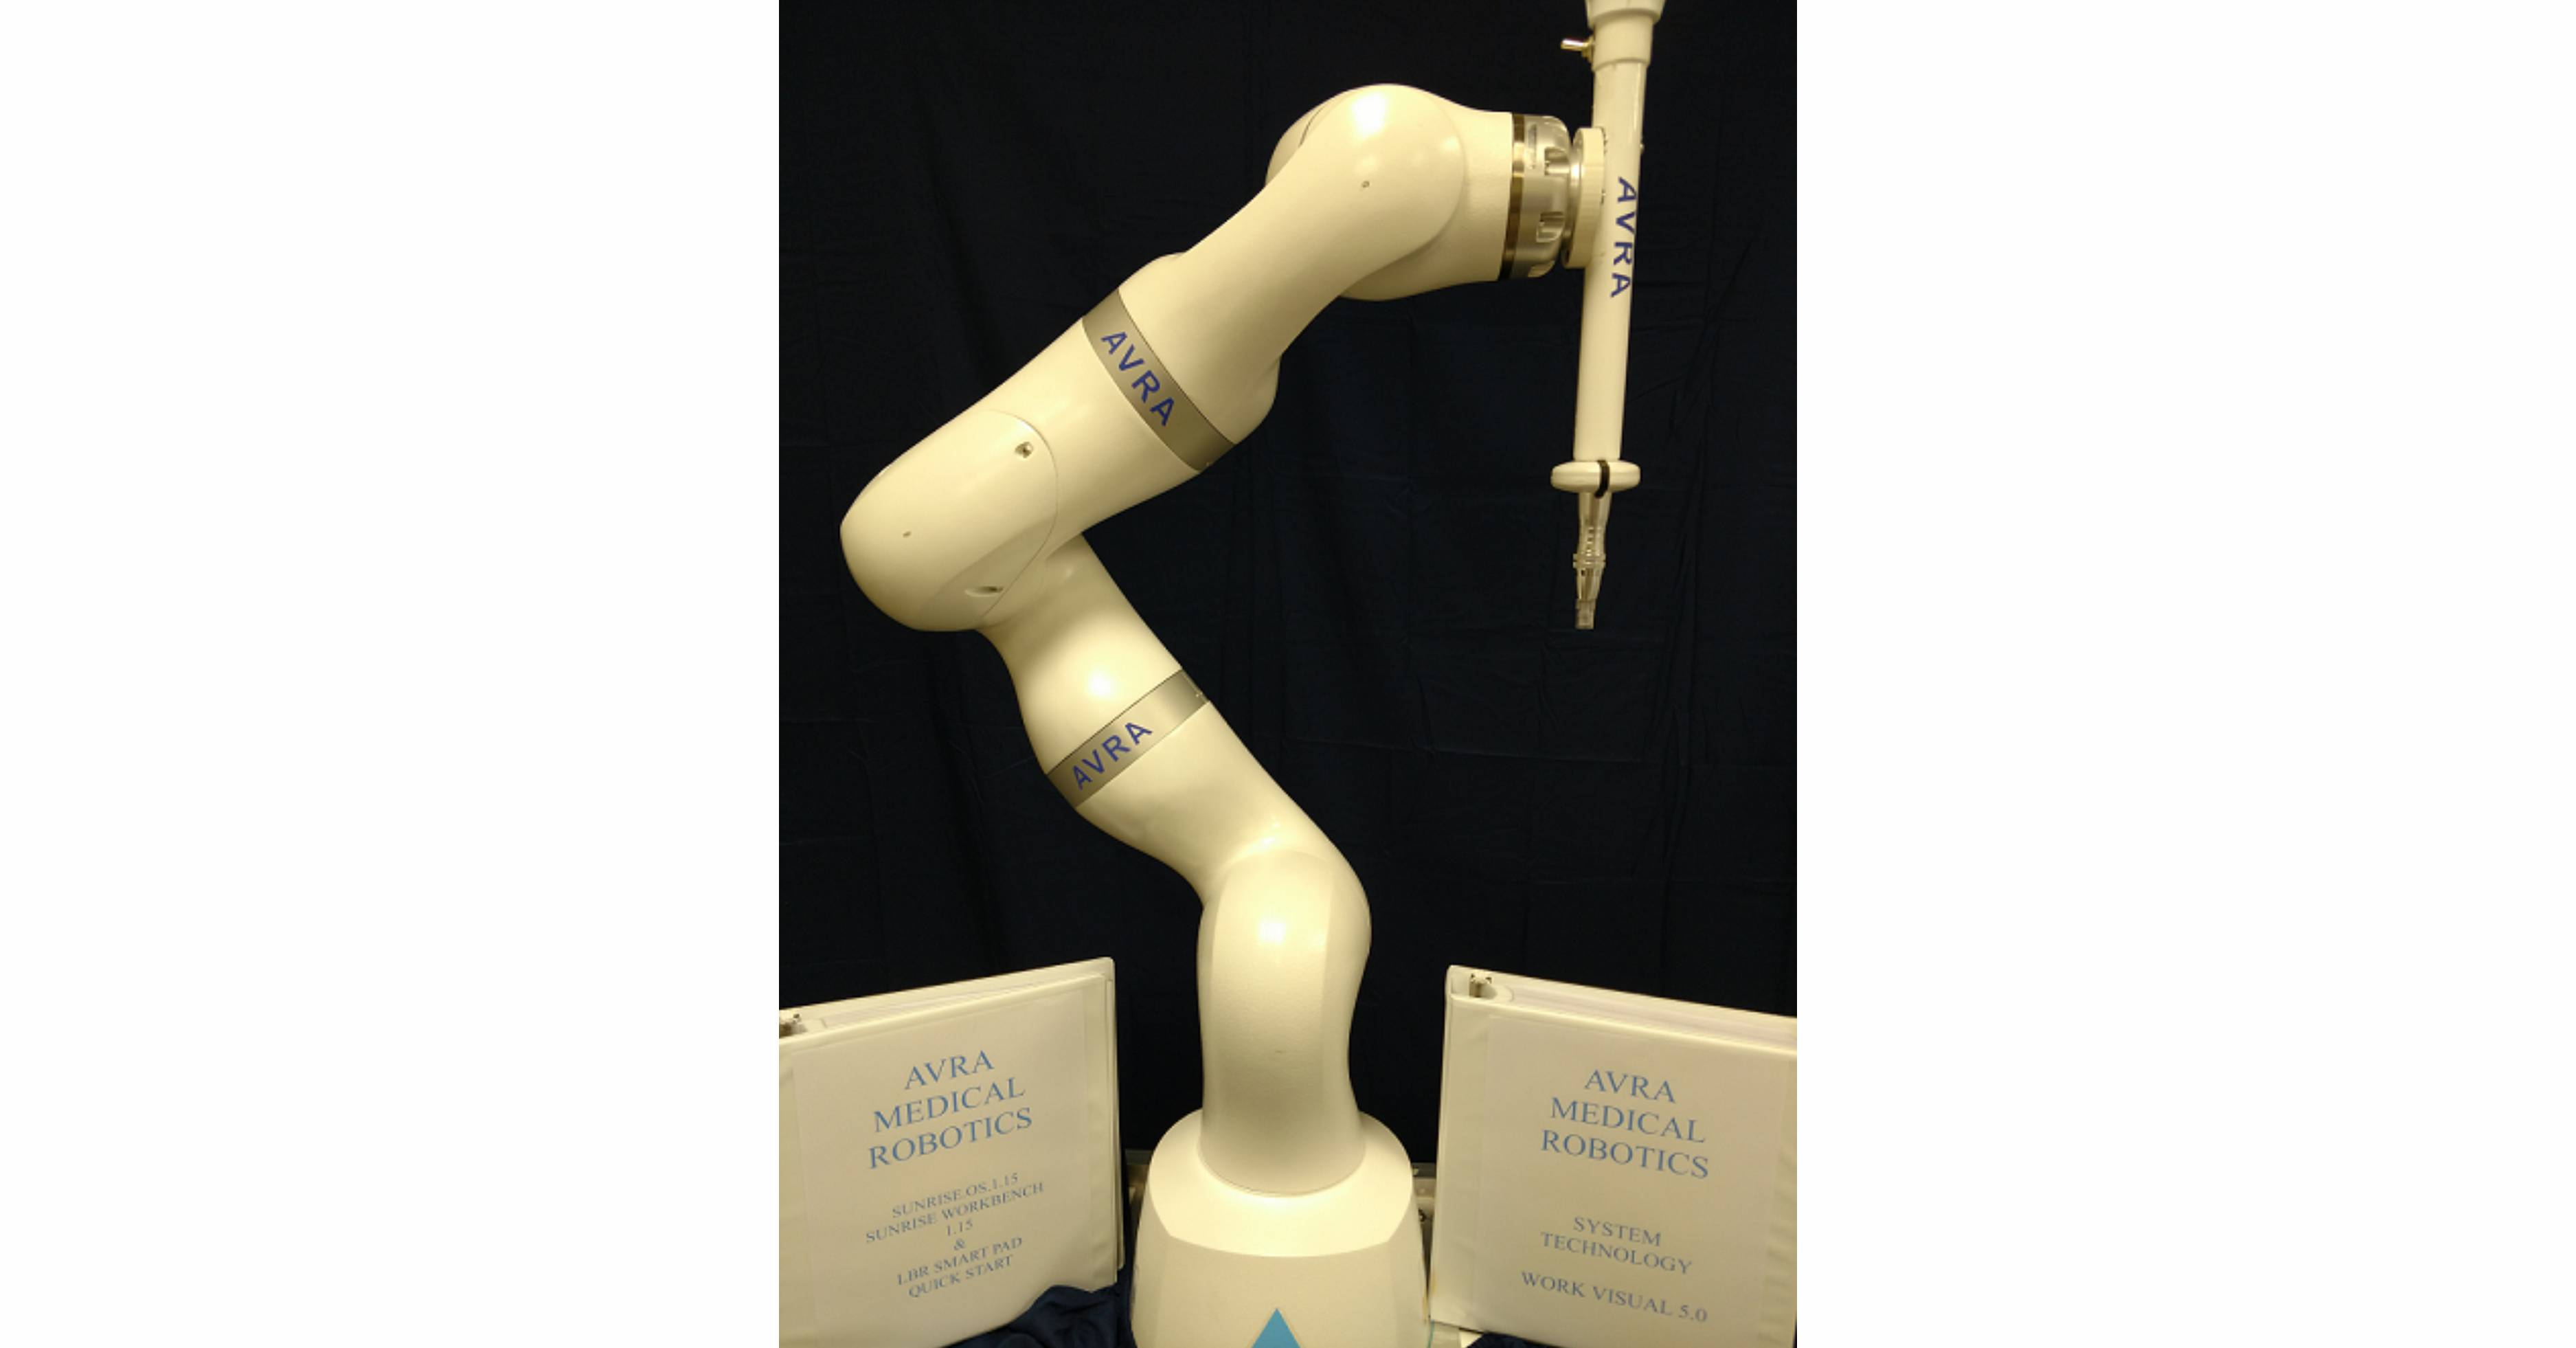 AVRA Medical Robots to Perform Medical Procedures Using Surgical and Non-Surgical Devices